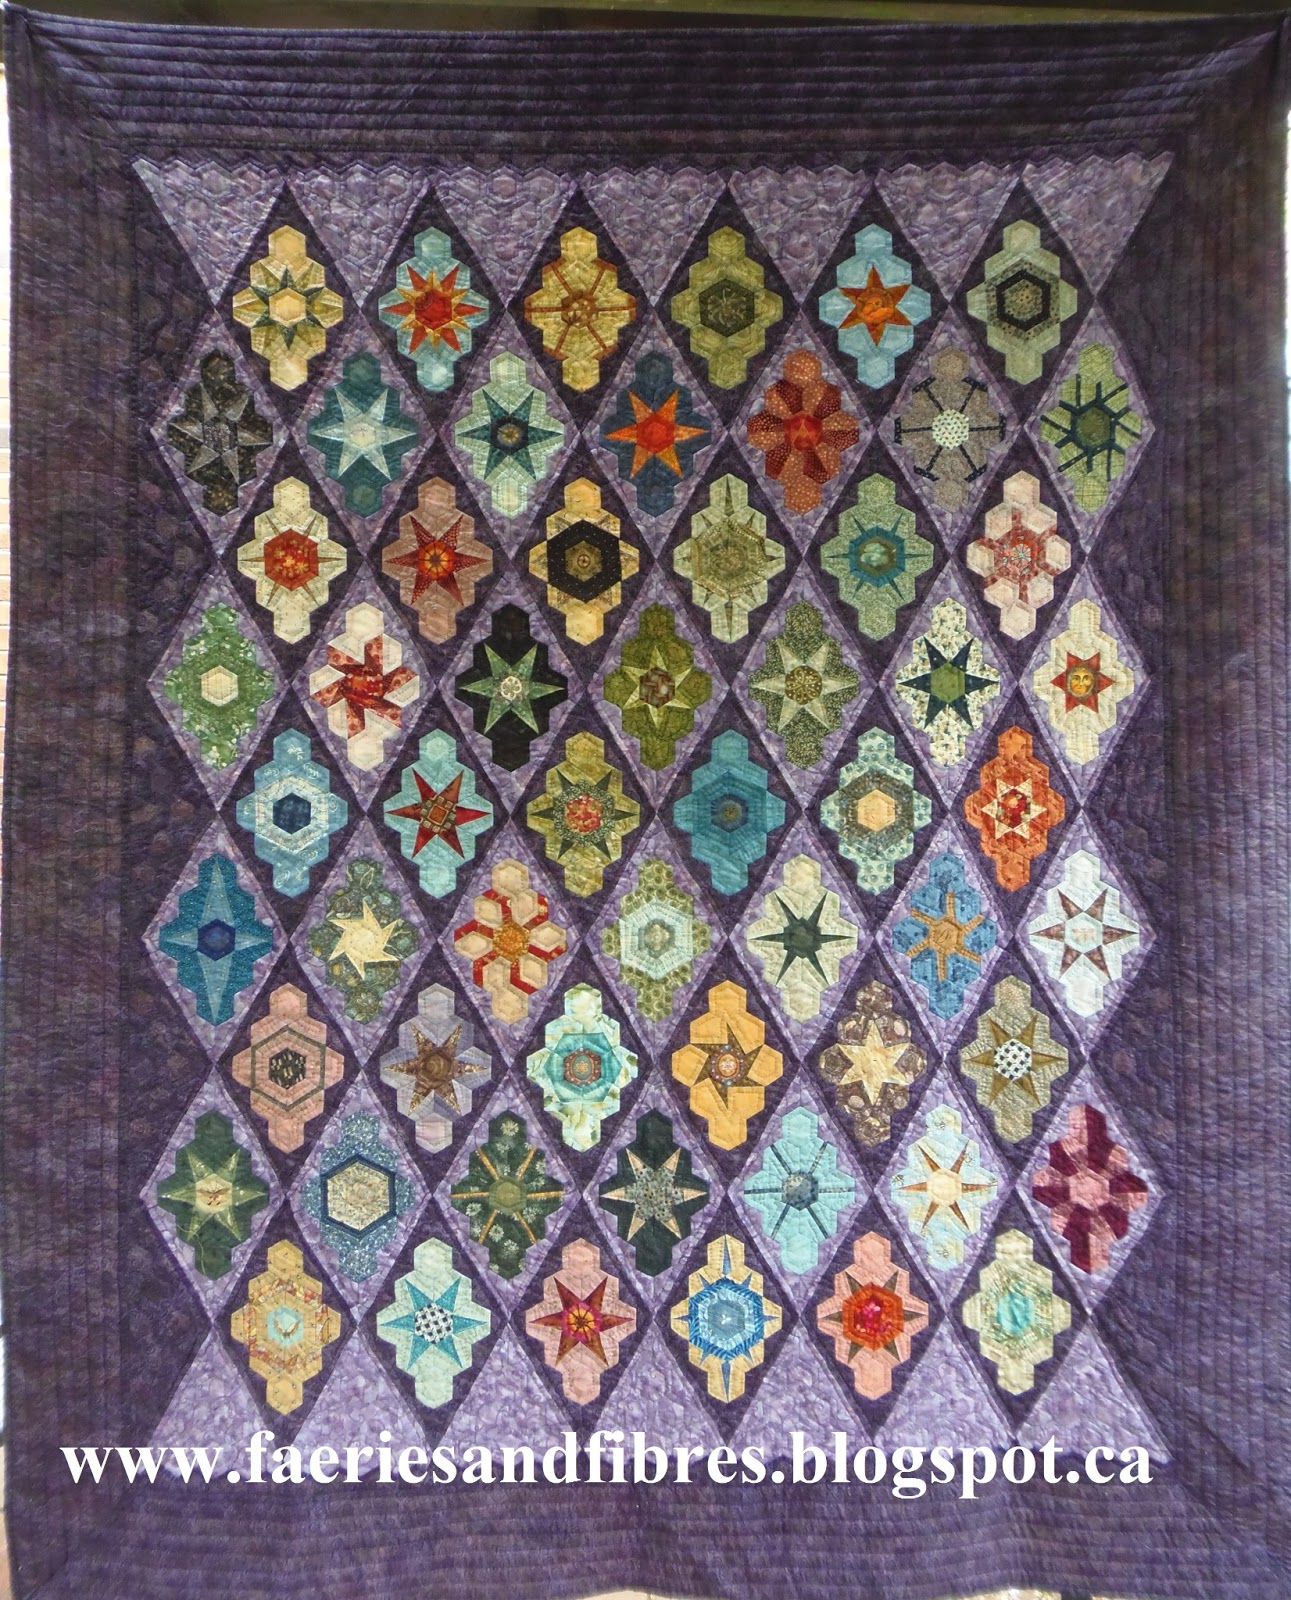 Faeries And Fibres Cherry Blossom Quilt Pattern Hexagon